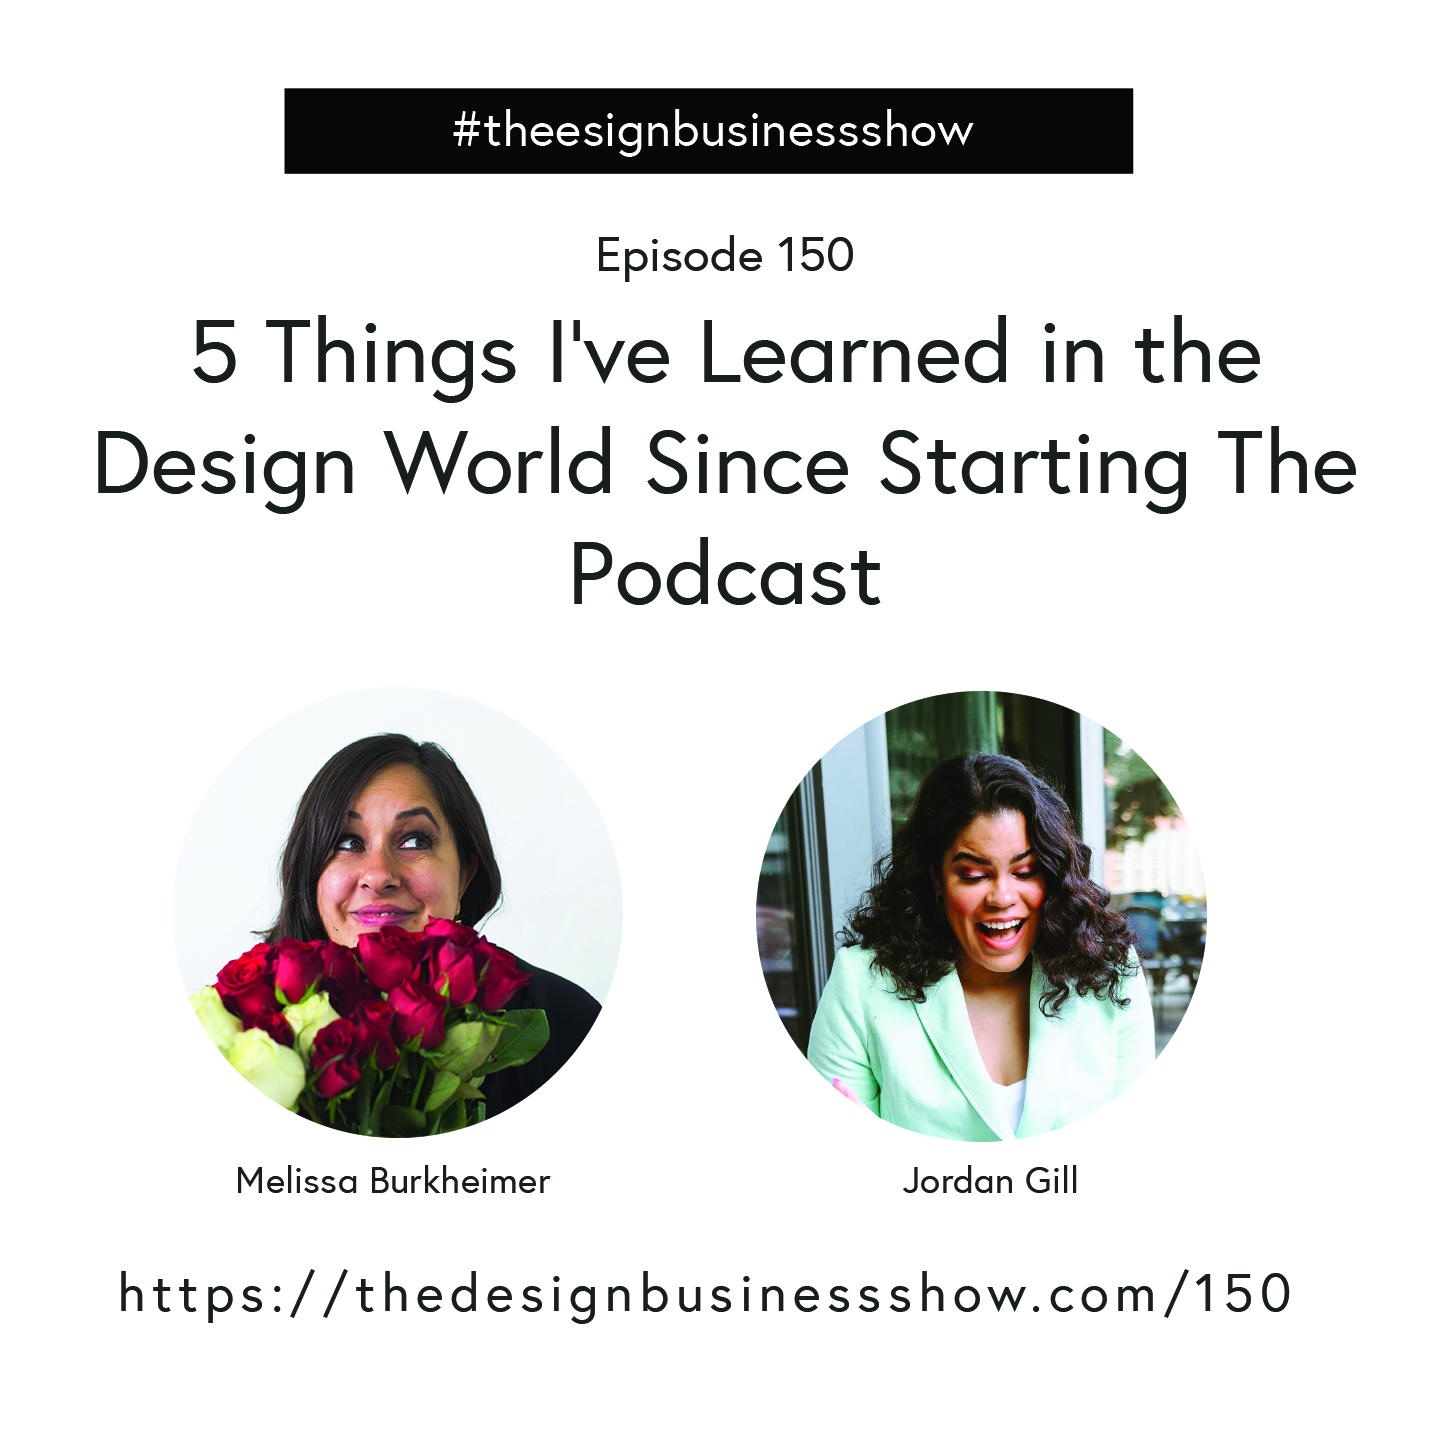 Check out episode 150 of The Design Business Show to learn all about 5 important things I've learned in the design world!